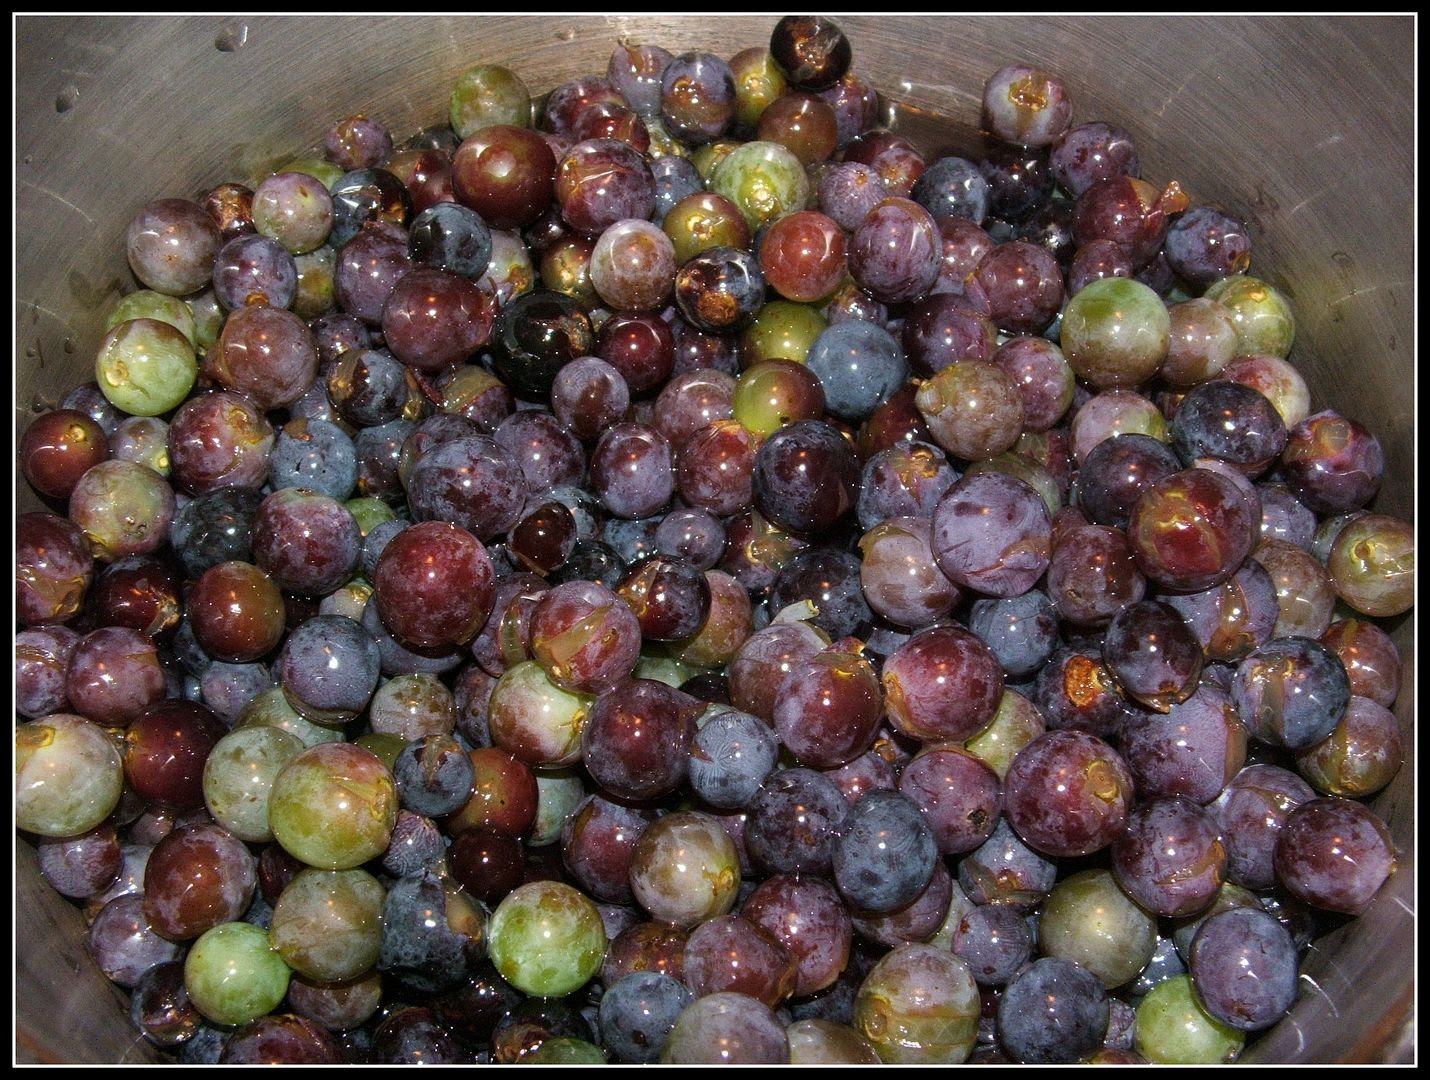 Grape Jelly by Angie Ouellette-Tower for godsgrowinggarden.com photo 009_zps16710ad8.jpg